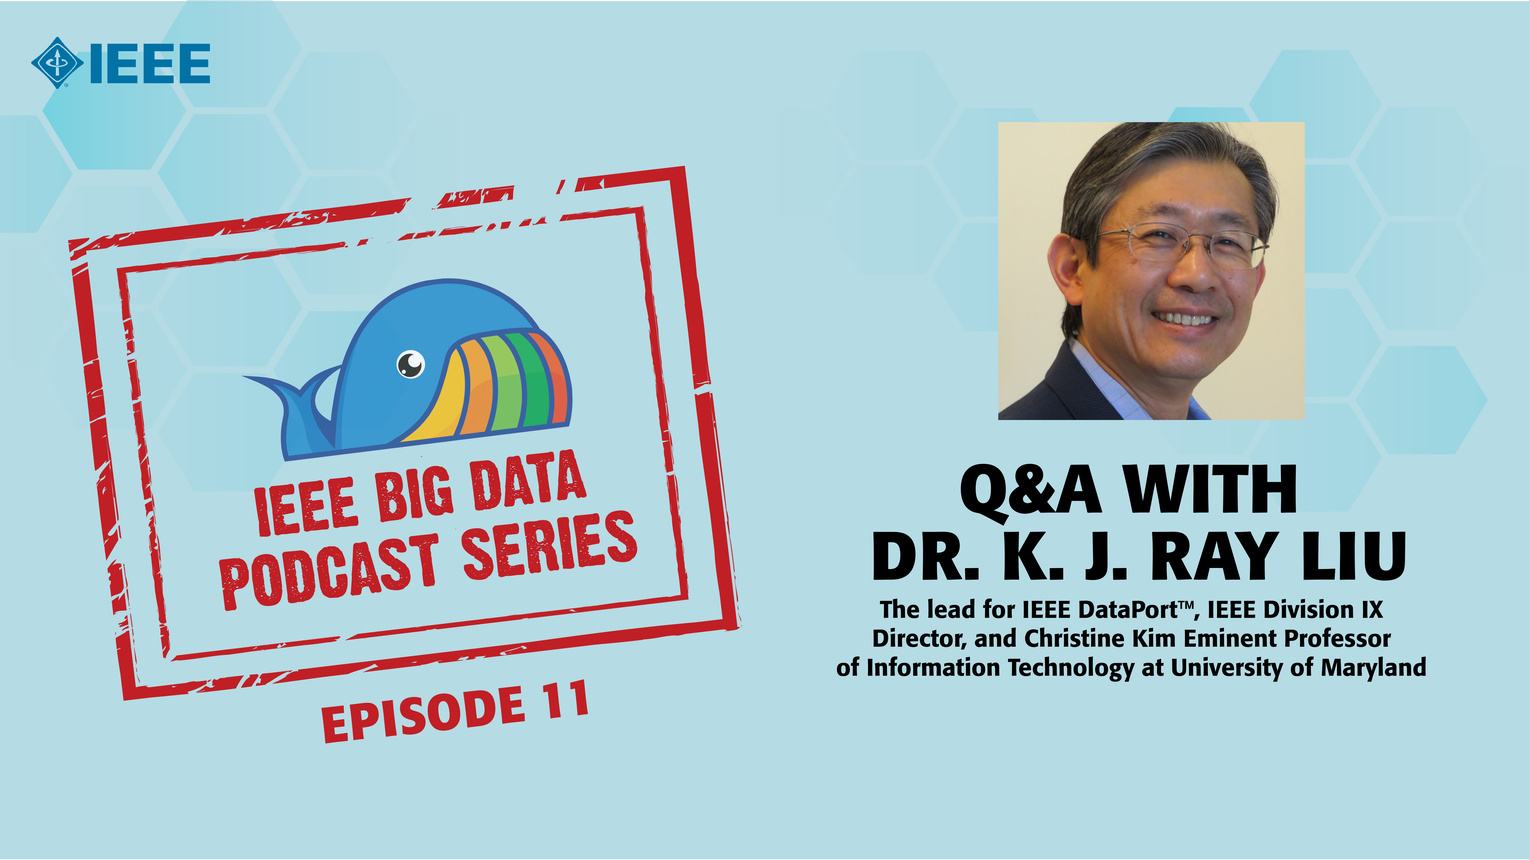 Q&A with Dr. K. J. Ray Liu: IEEE Big Data Podcast, Episode 11